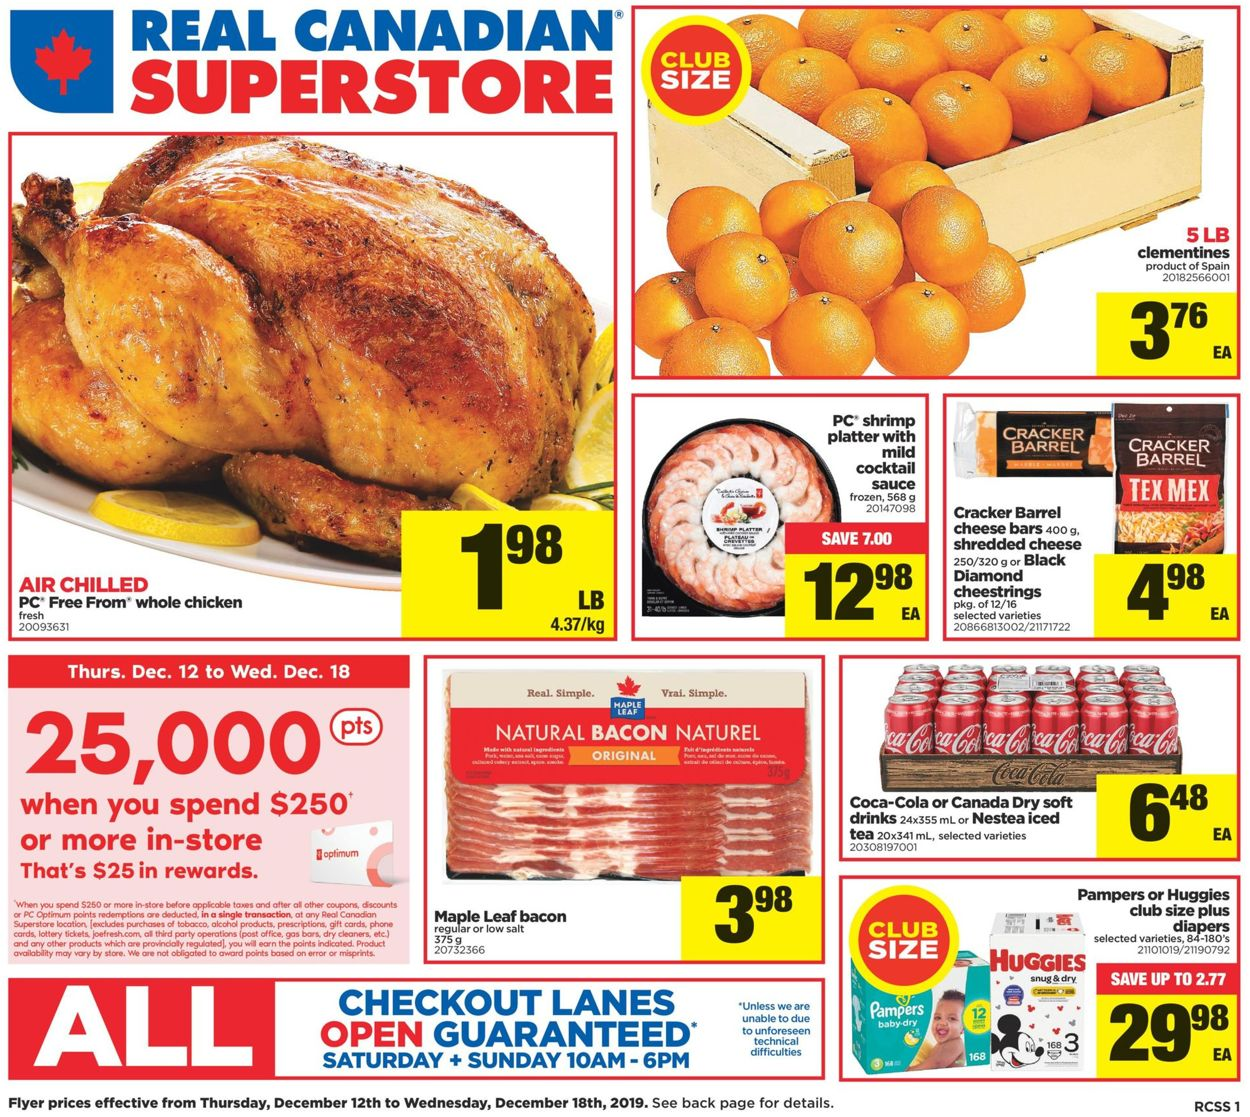 Real Canadian Superstore - Holiday 2019 Deals Flyer - 12/12-12/18/2019